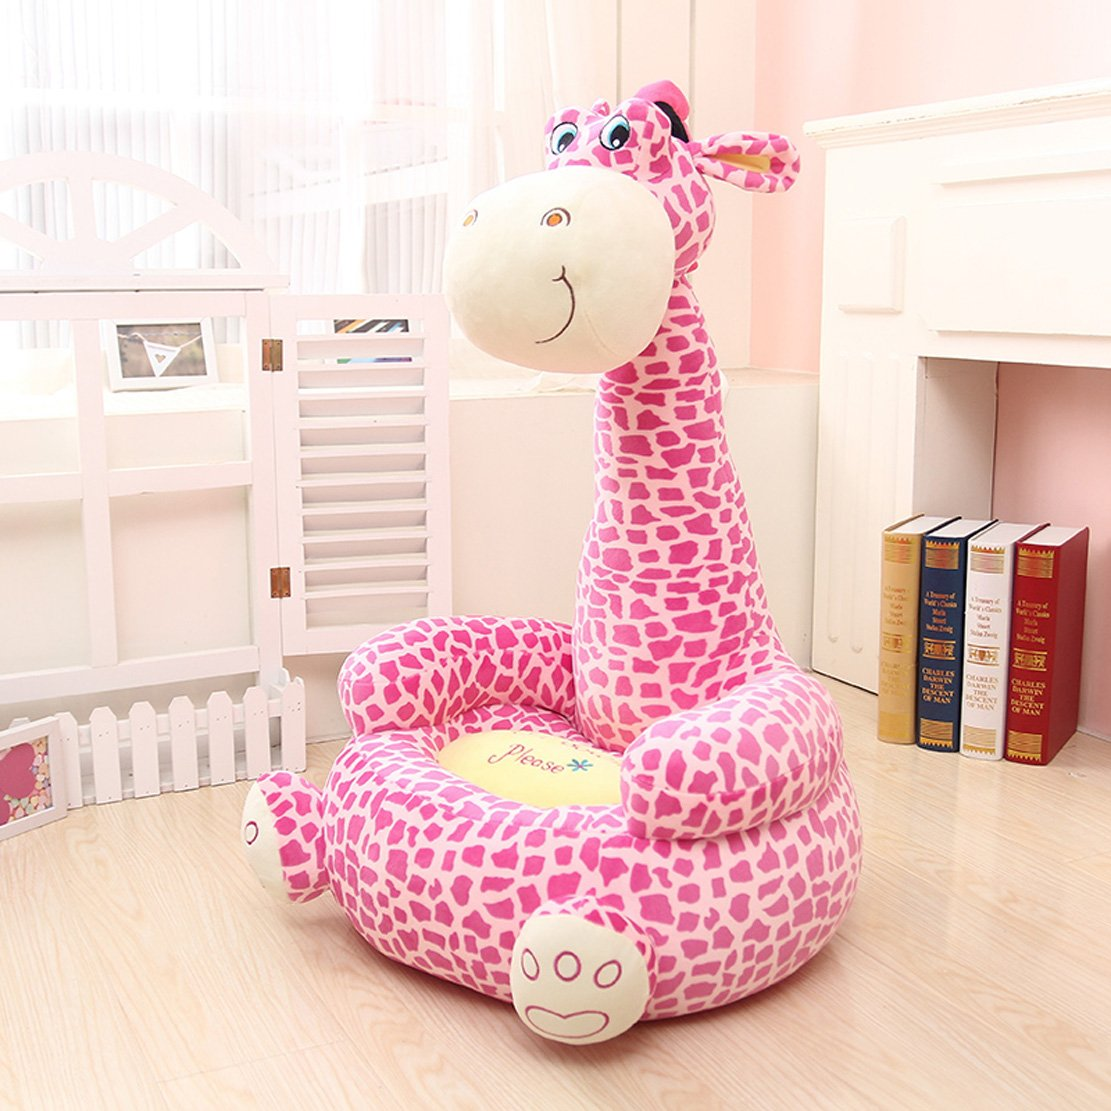 MAXYOYO Super Cute Plush Toy Bean Bag Chair Seat for Children,Cute Animal Plush Soft Sofa Seat,Cartoon Tatami Chairs,Birthday Gifts for Boys and Girls (pink giraffe)